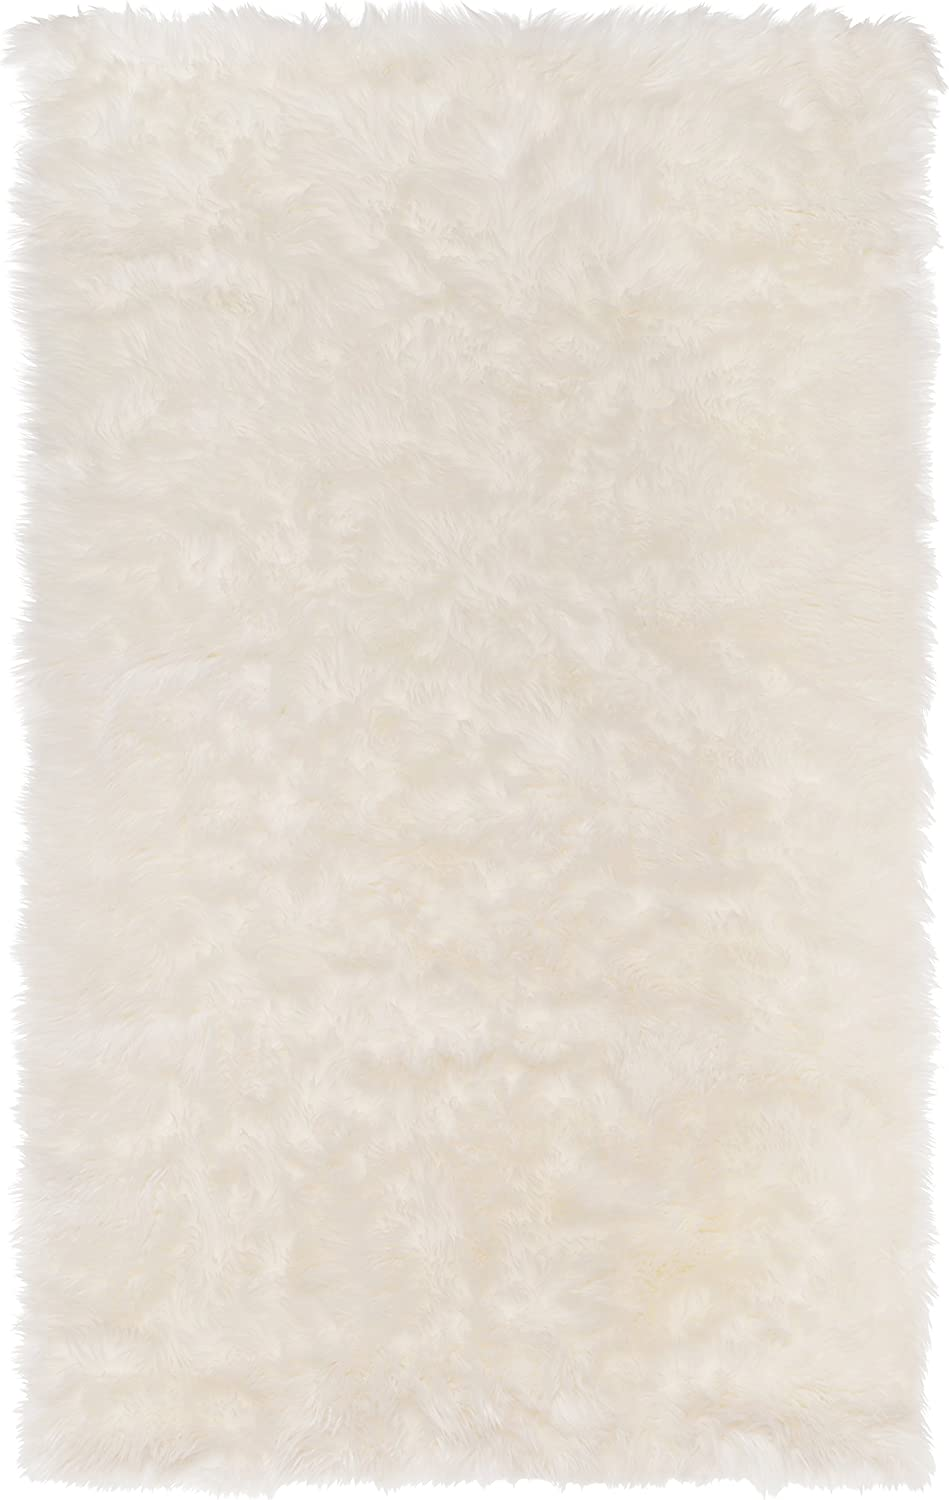 SLPR High Pile Rectangular Faux Sheepskin Rug (3' x 5', White) | Super Area Rug Soft Fur Accent for Chair Bedroom Living Room Cottage Cabin